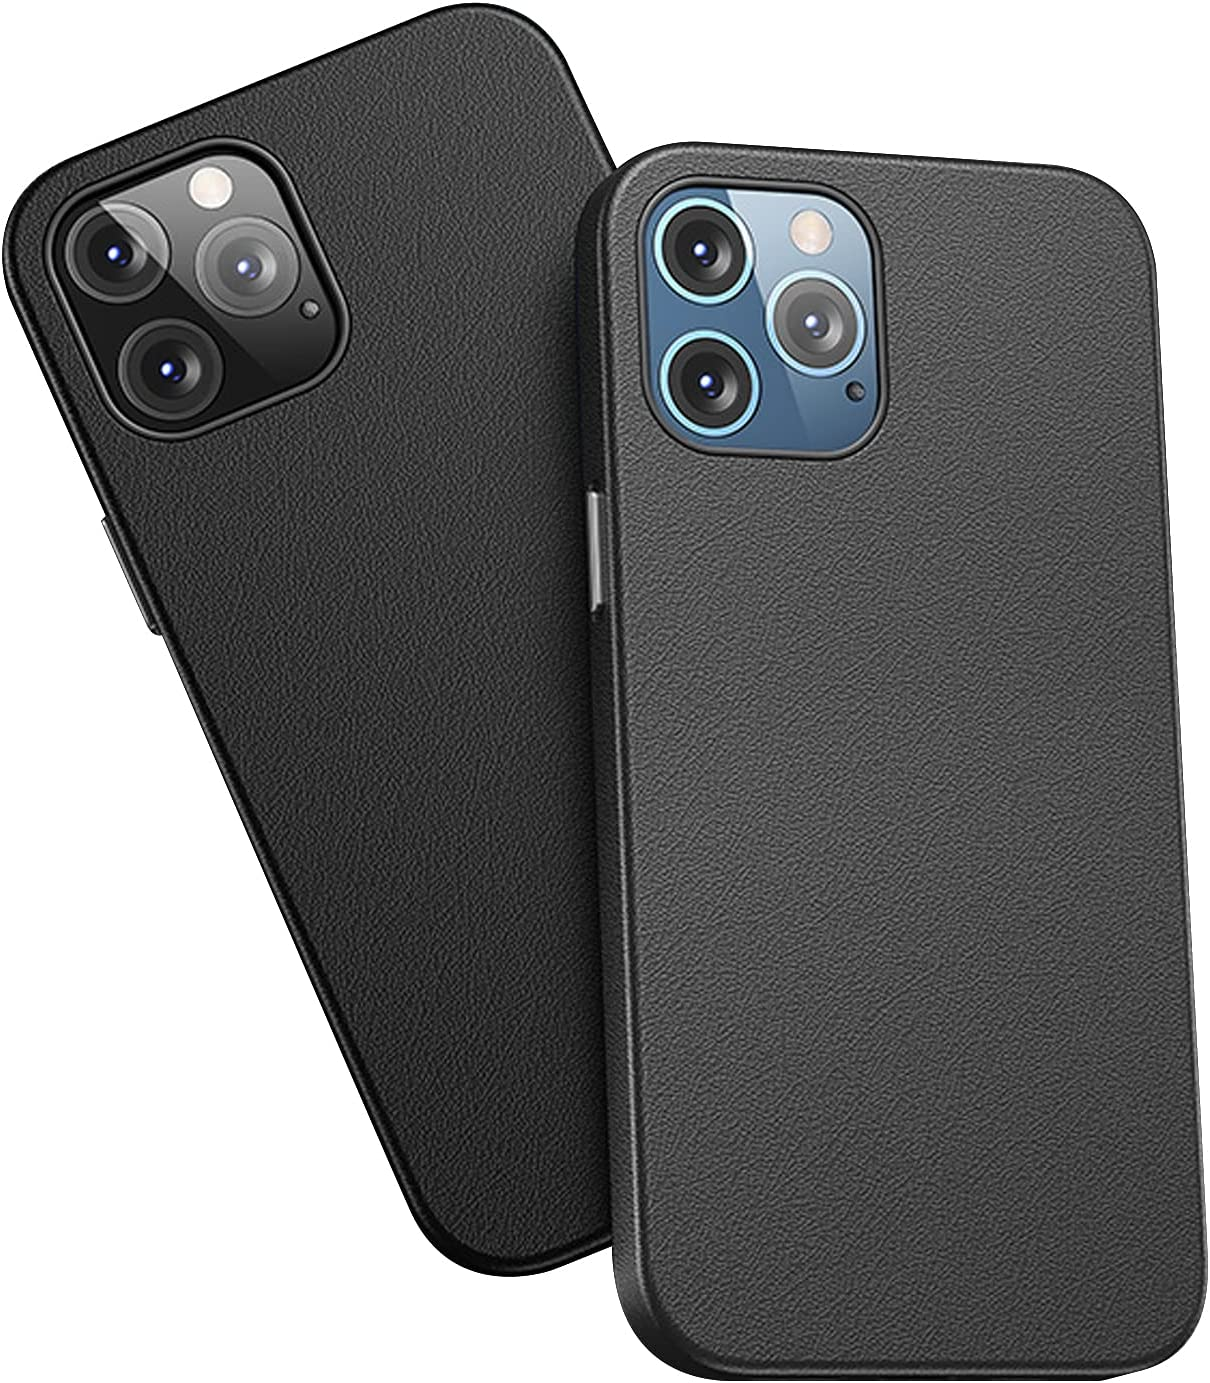 Souina Compatible with Phone 12 Pro Max Case 6.7 inch(2020),Full Body Protection Shockproof Drop Protection Case Hard Shell Protective PU Leather Slim Protective Case (Black)